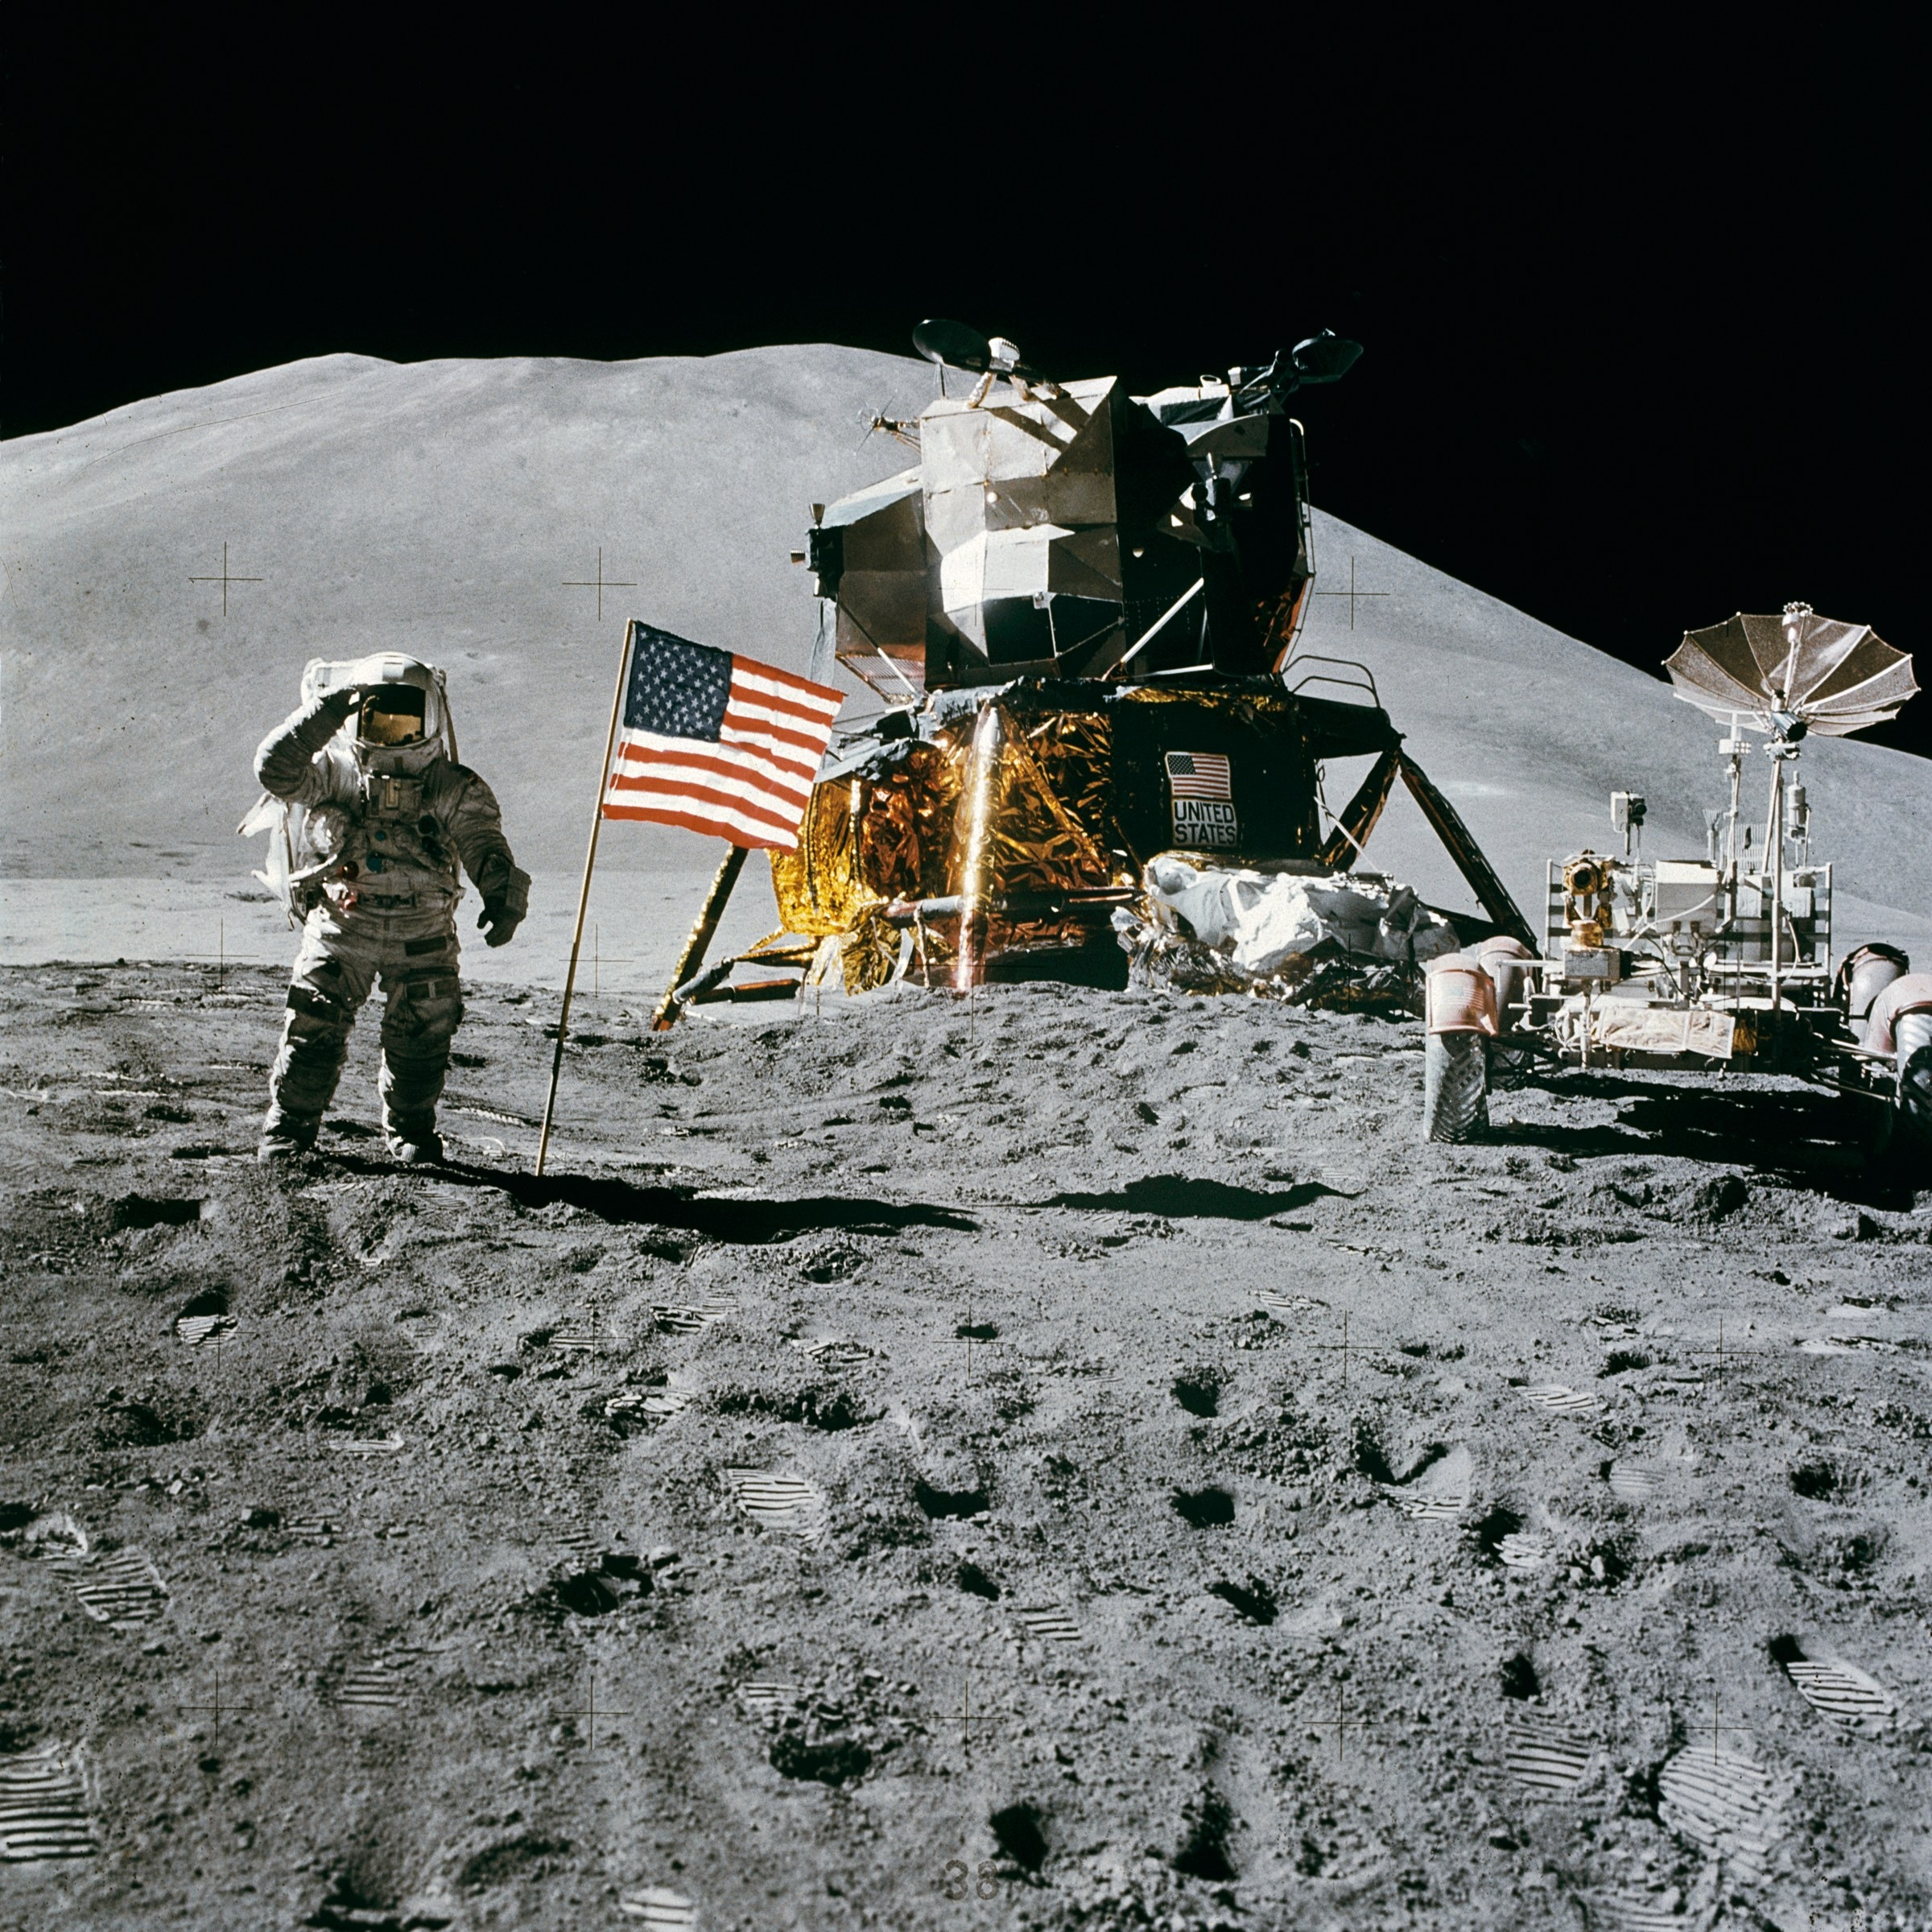 space-station-moon-landing-apollo-15-james-irwin-39896.jpeg